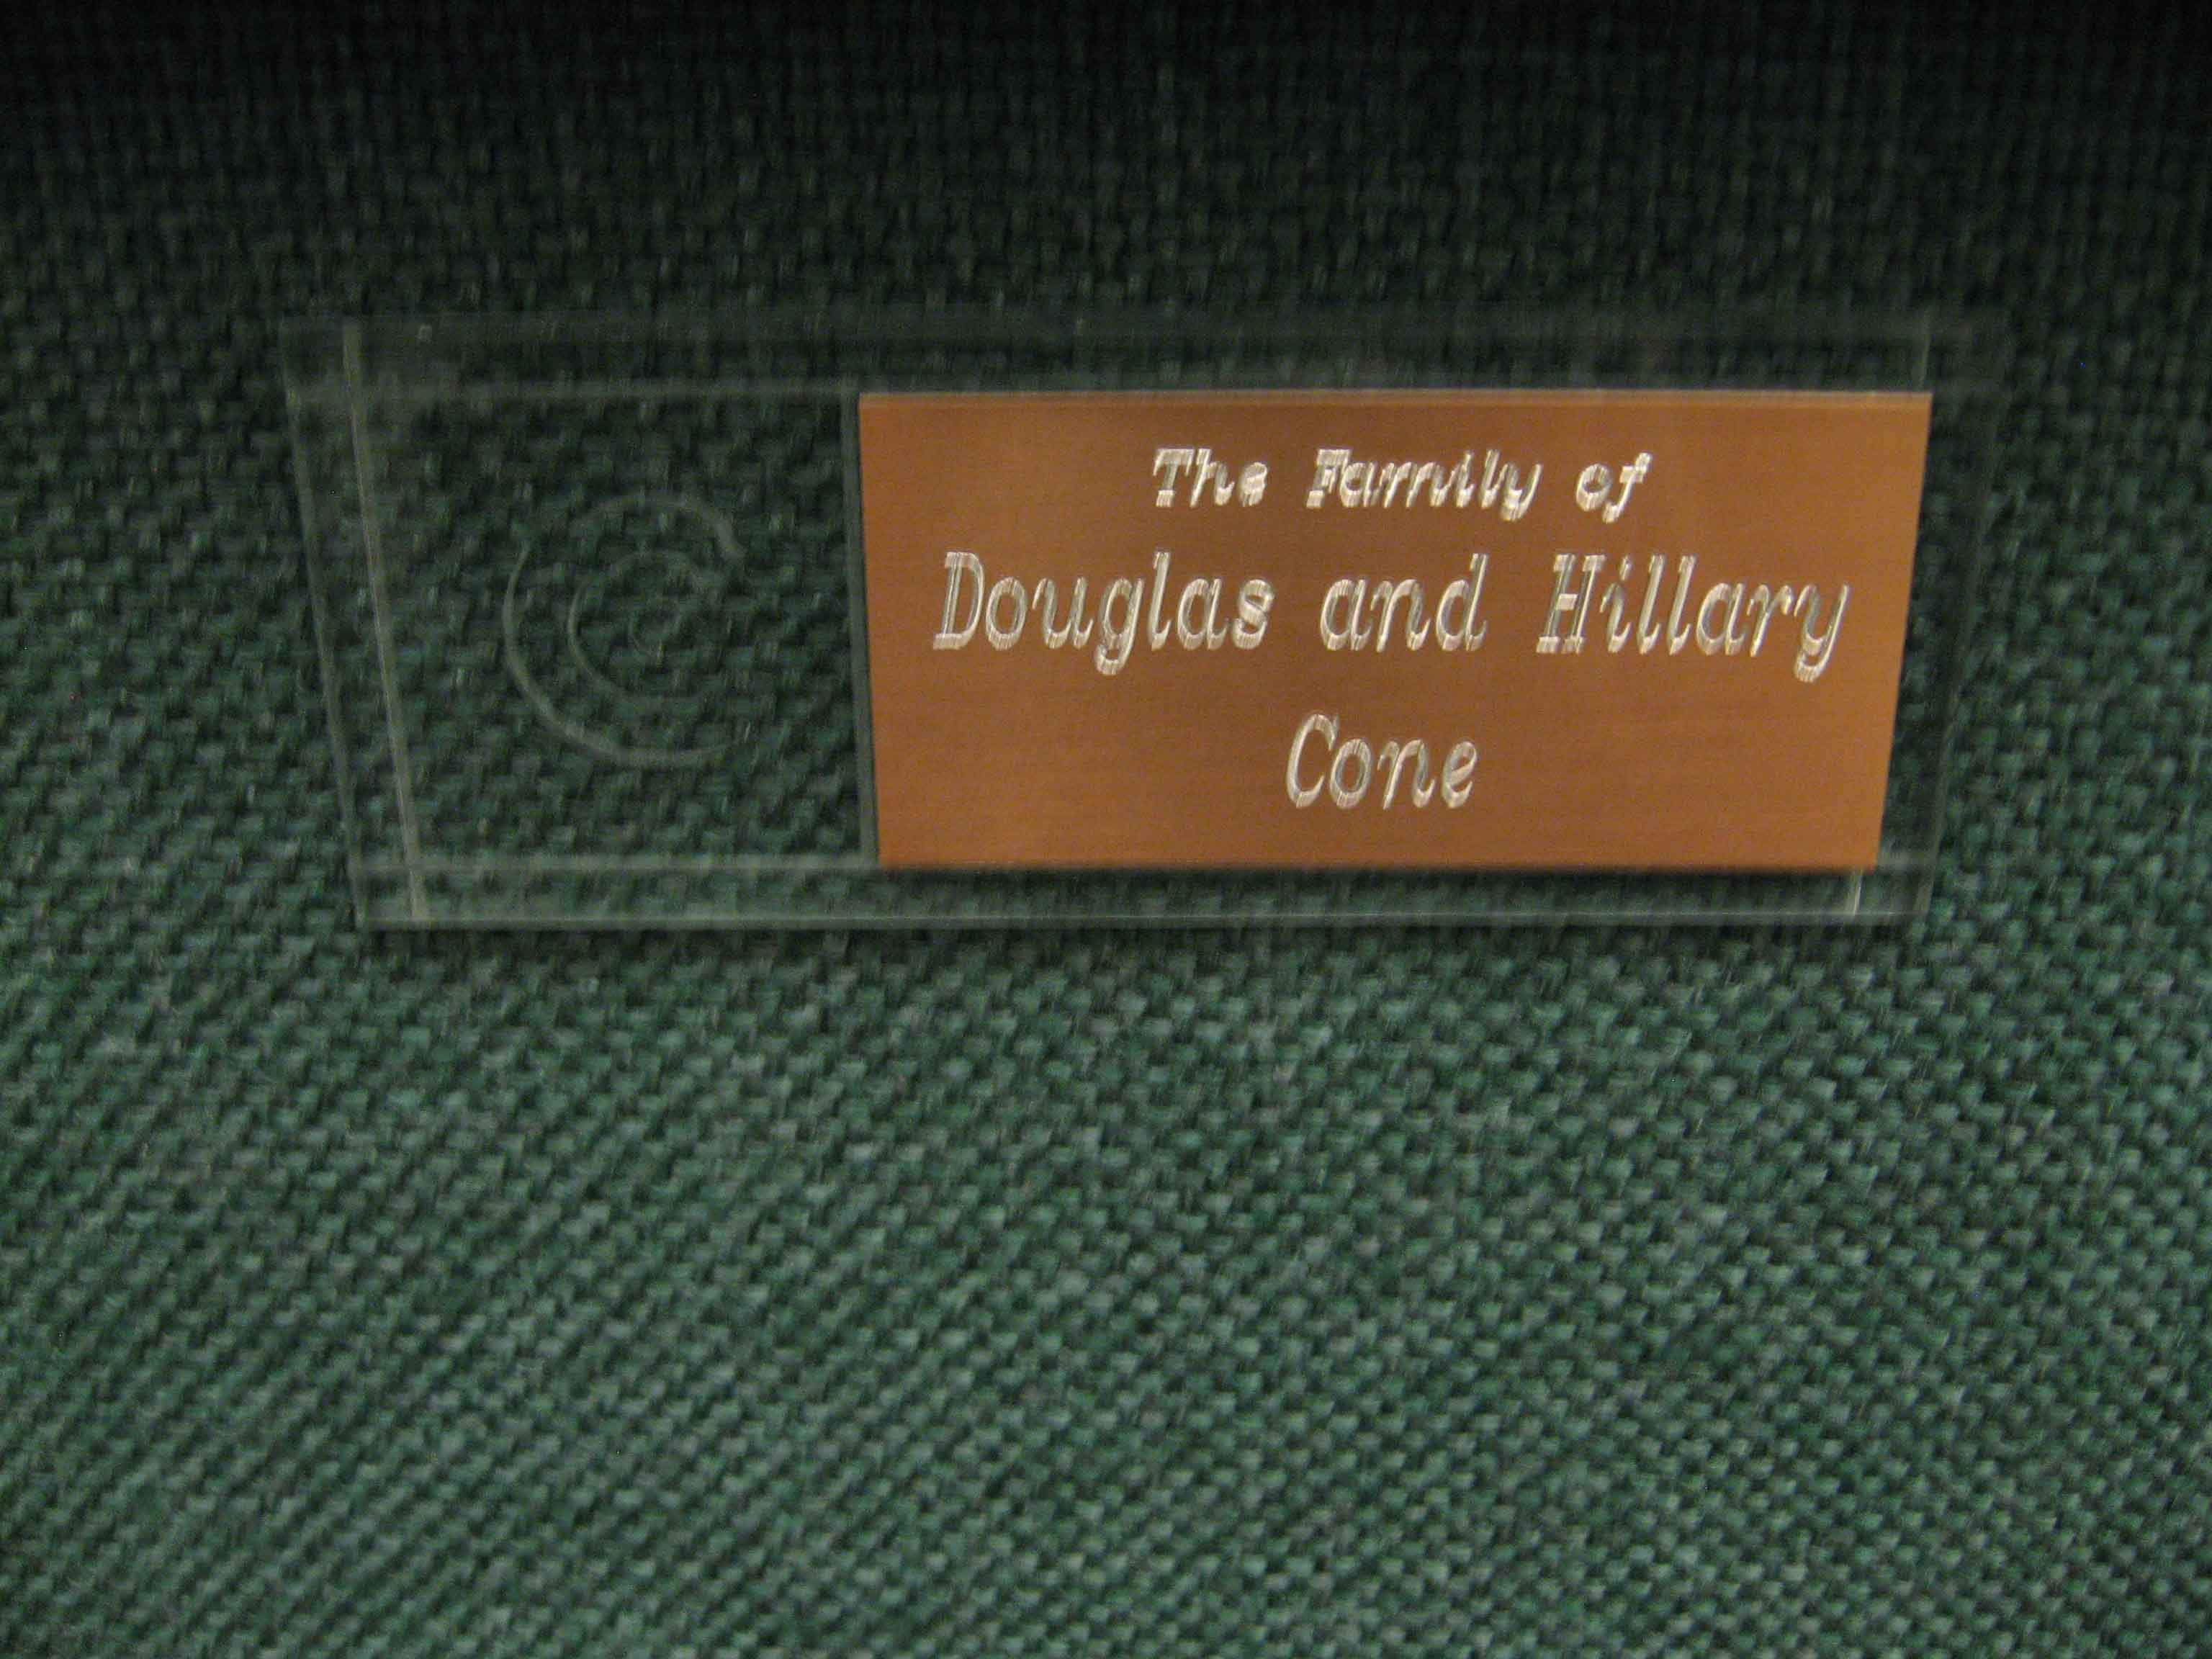 First-Chair-Douglas-Hillary-Cone